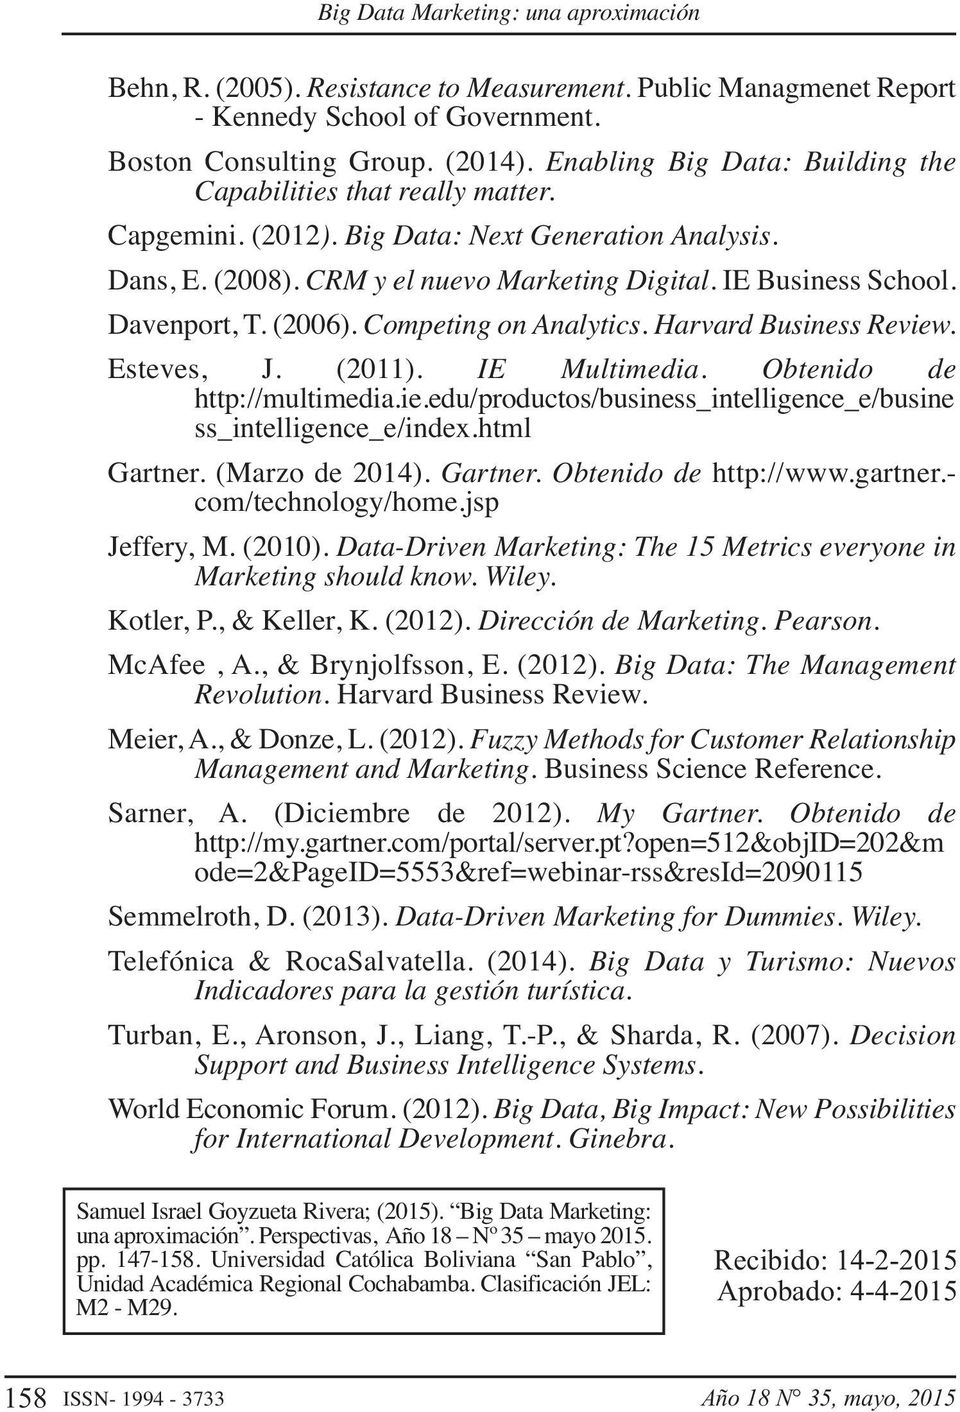 Esteves, J. (2011). IE Multimedia. Obtenido de http://multimedia.ie.edu/productos/business_intelligence_e/busine ss_intelligence_e/index.html Gartner. (Marzo de 2014). Gartner. Obtenido de http://www.